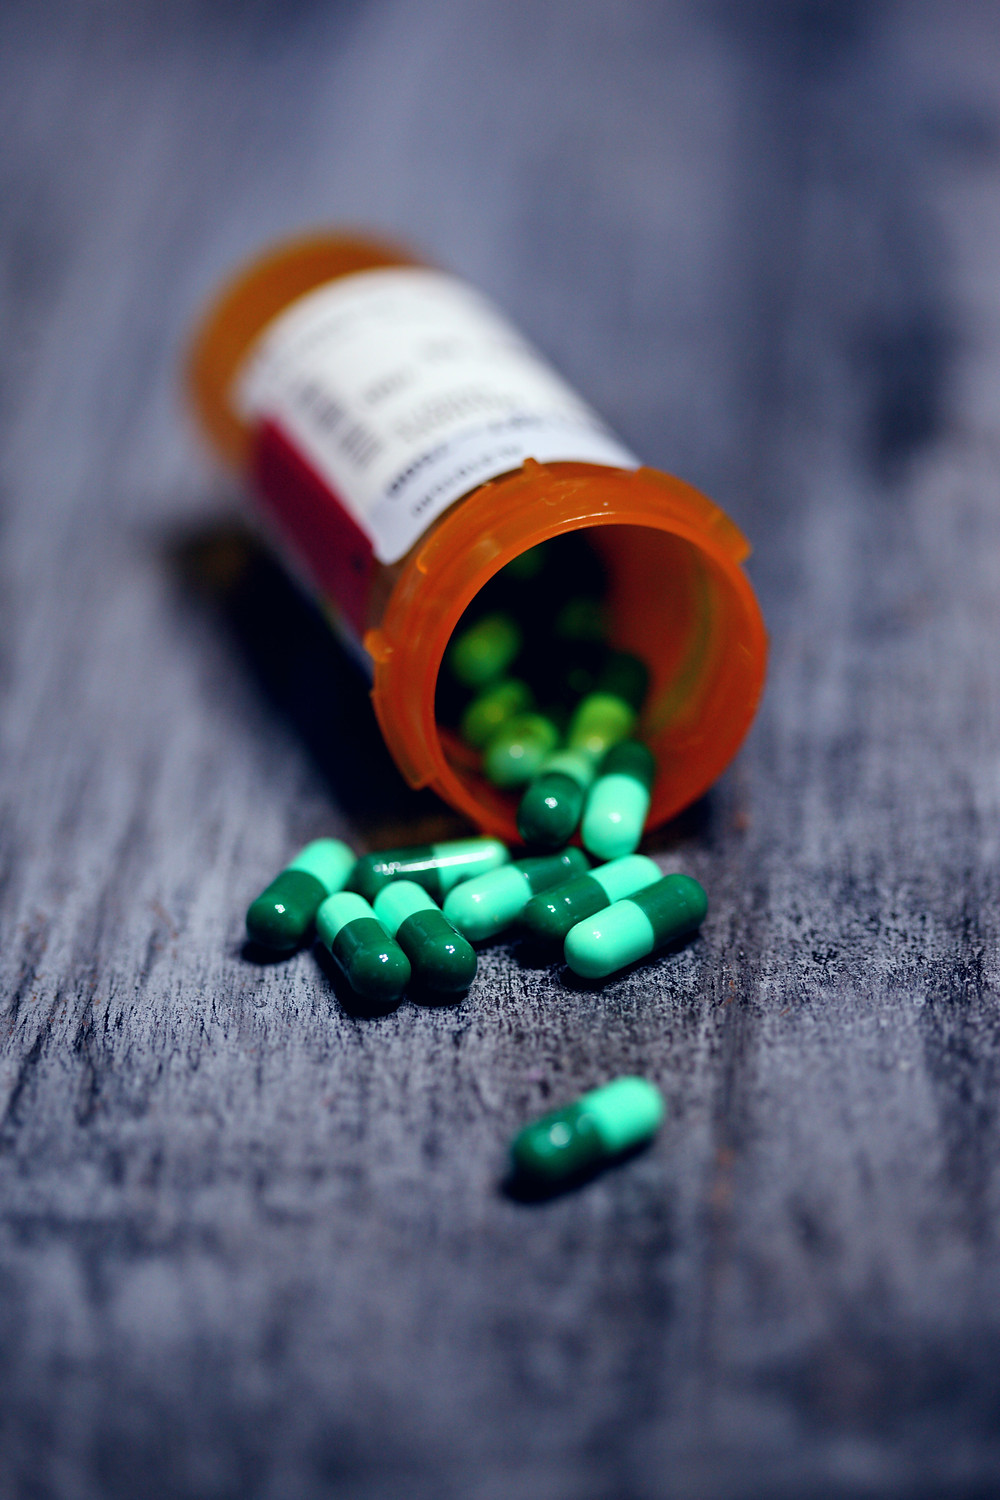 Pill bottle with green capsules spilling out